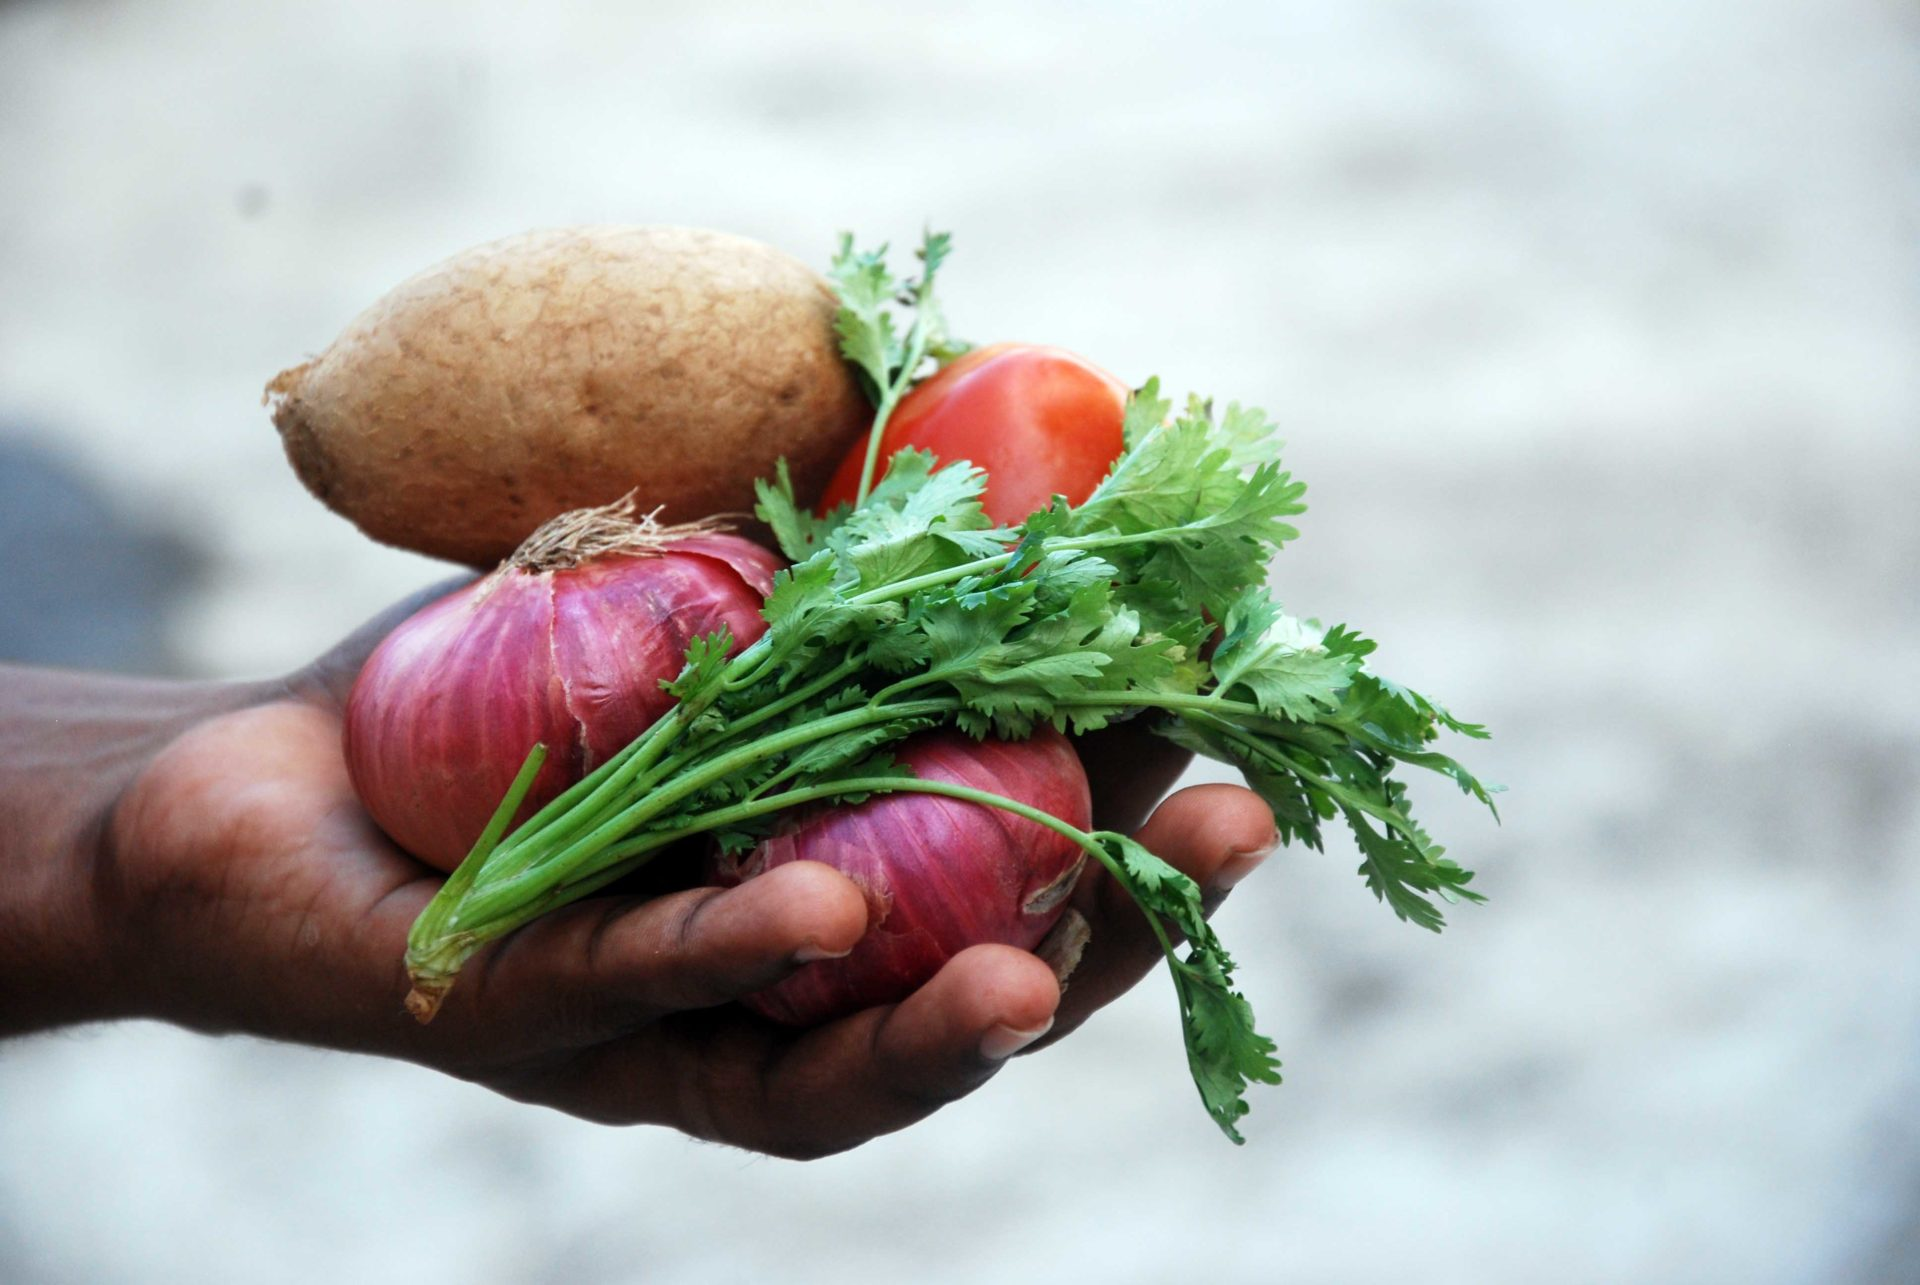 Amidst the coronavirus pandemic, farmers in Mzansi remain committed to feeding the nation.